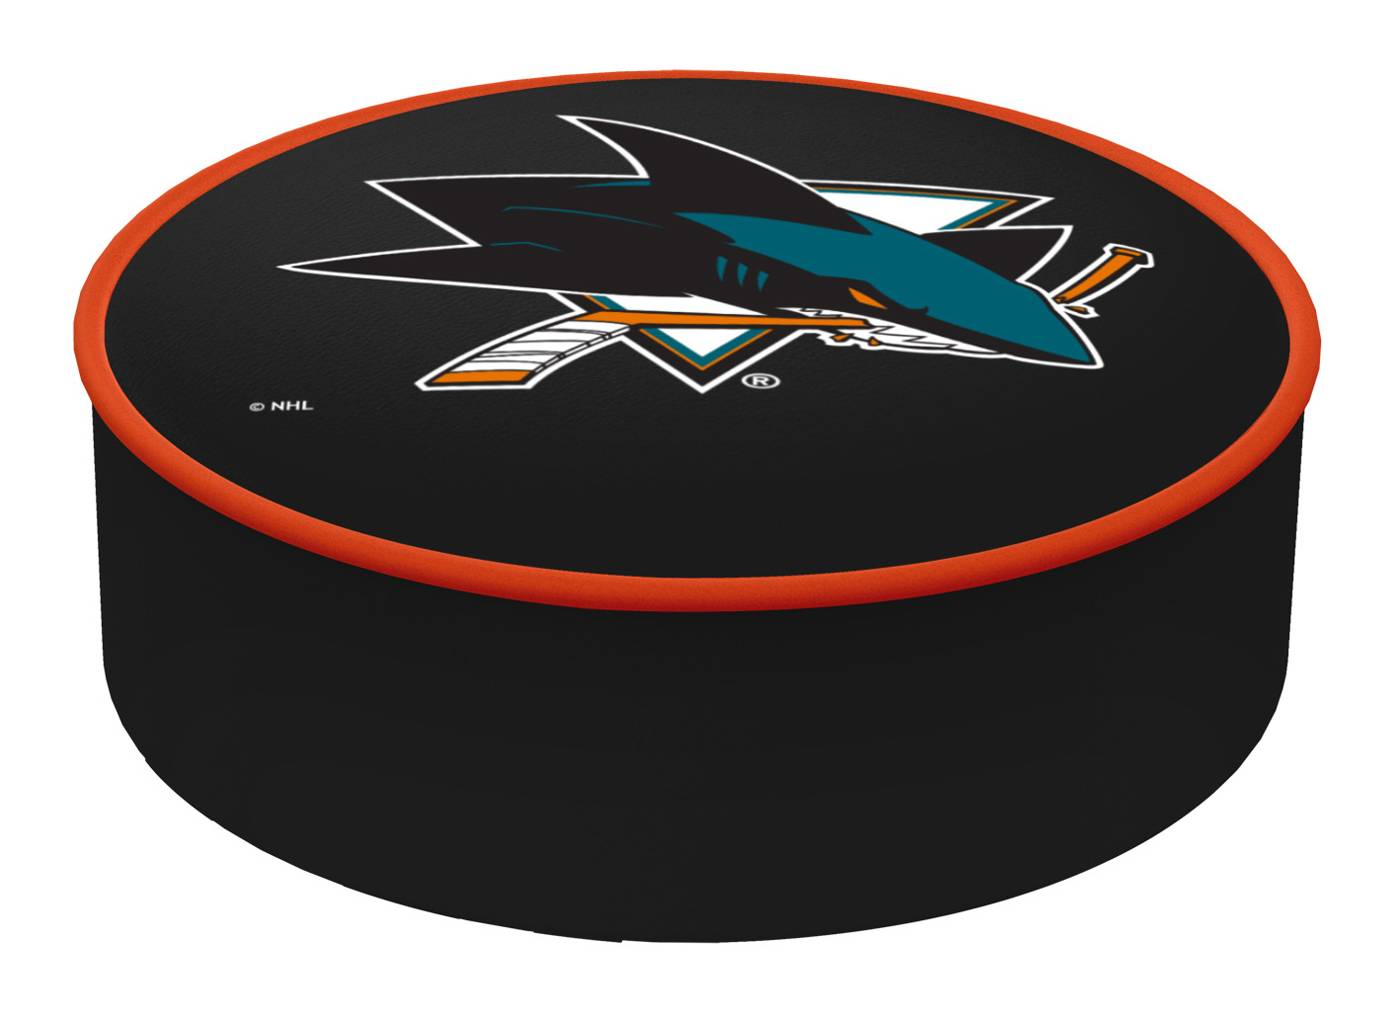 San Jose Sharks Bar Stool Seat Cover : san jose sharks bar stool seat covermainProductImageFullSize from www.sportsunlimitedinc.com size 1000 x 833 jpeg 64kB